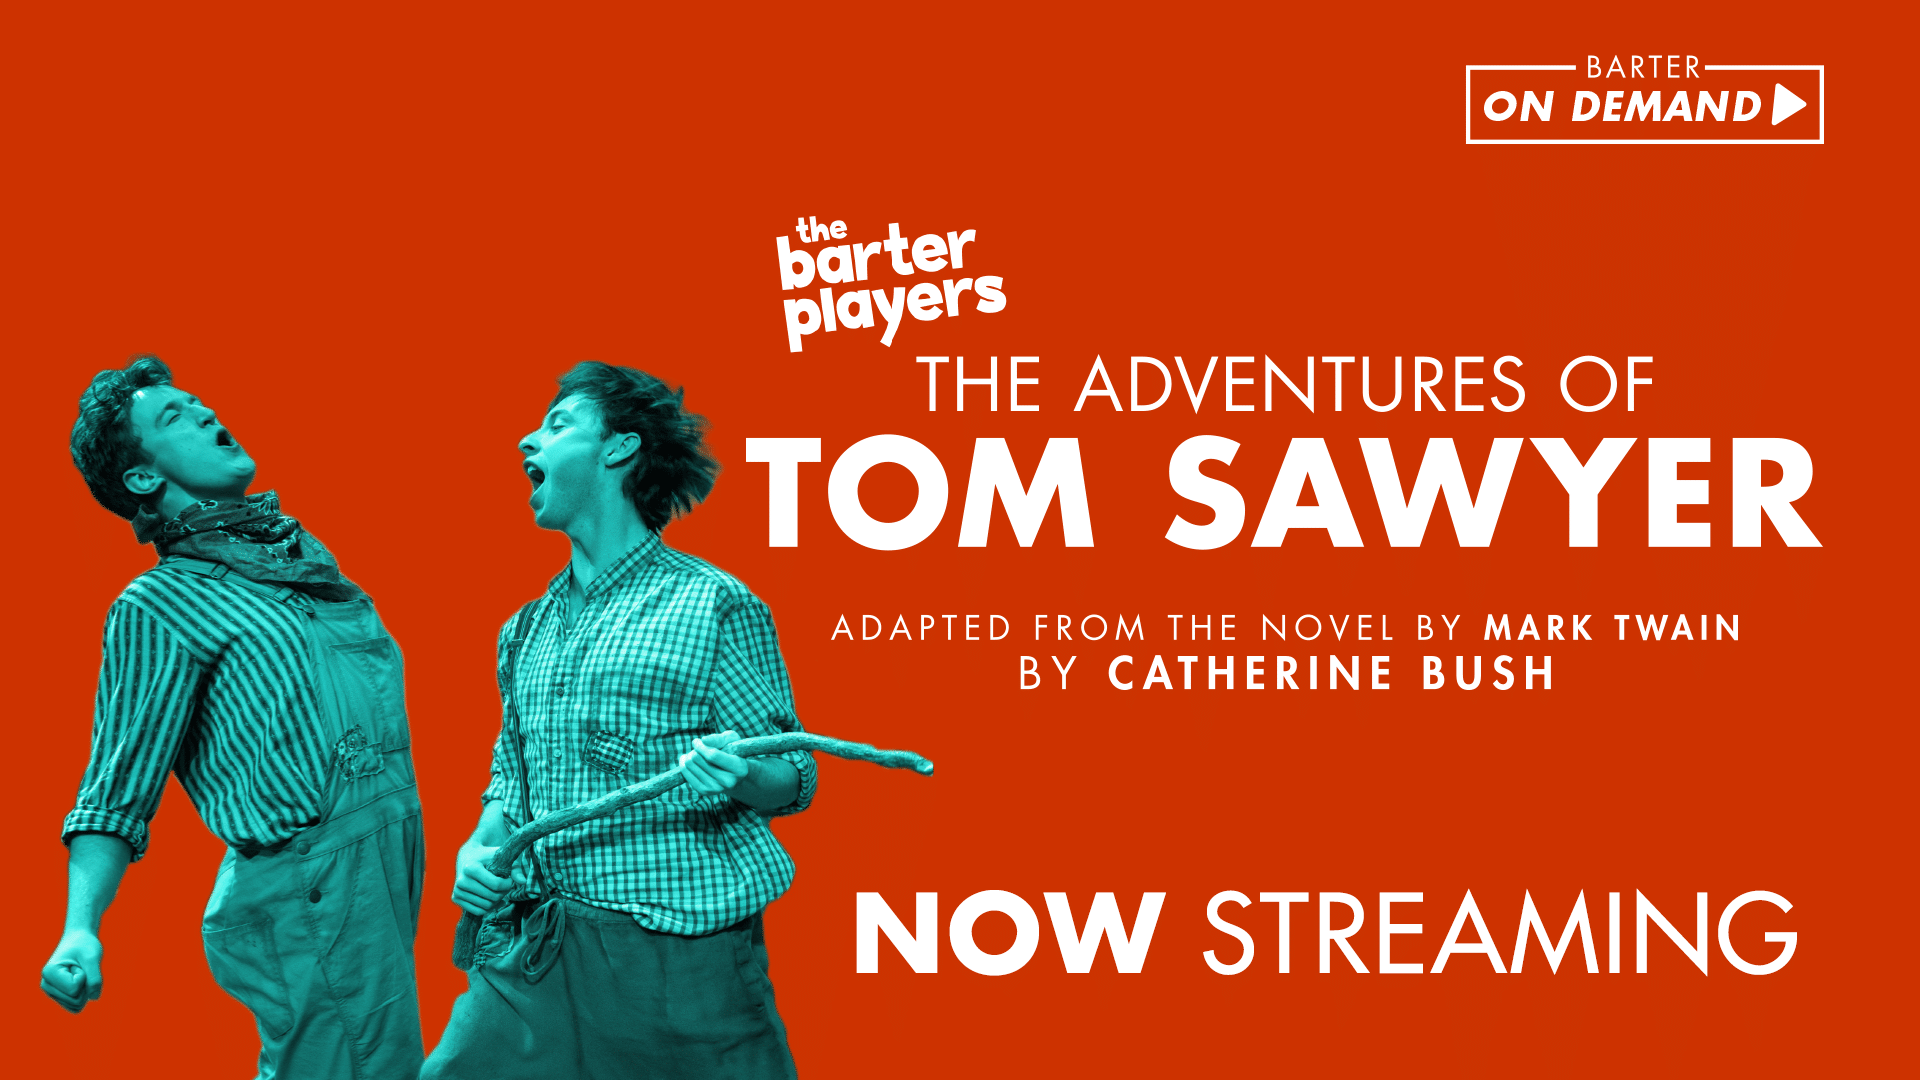 The Barter Players The Adventures of Tom Sawyer Now Streaming On Demand